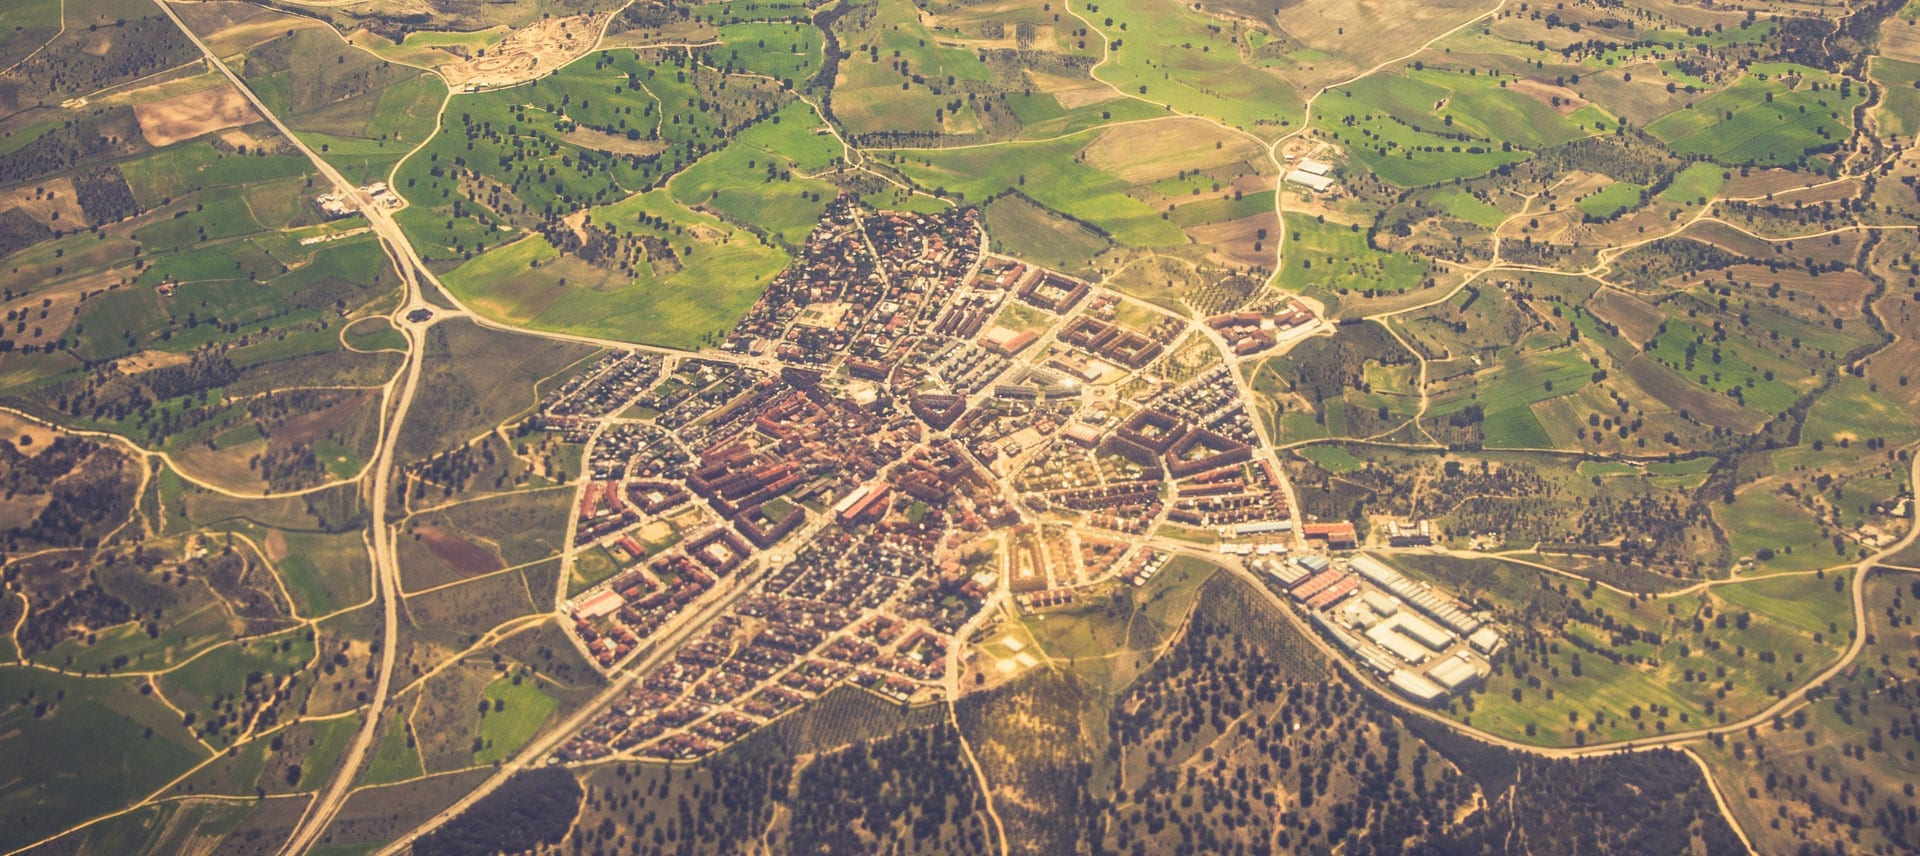 Aerial View Of A City Used As A Background Image